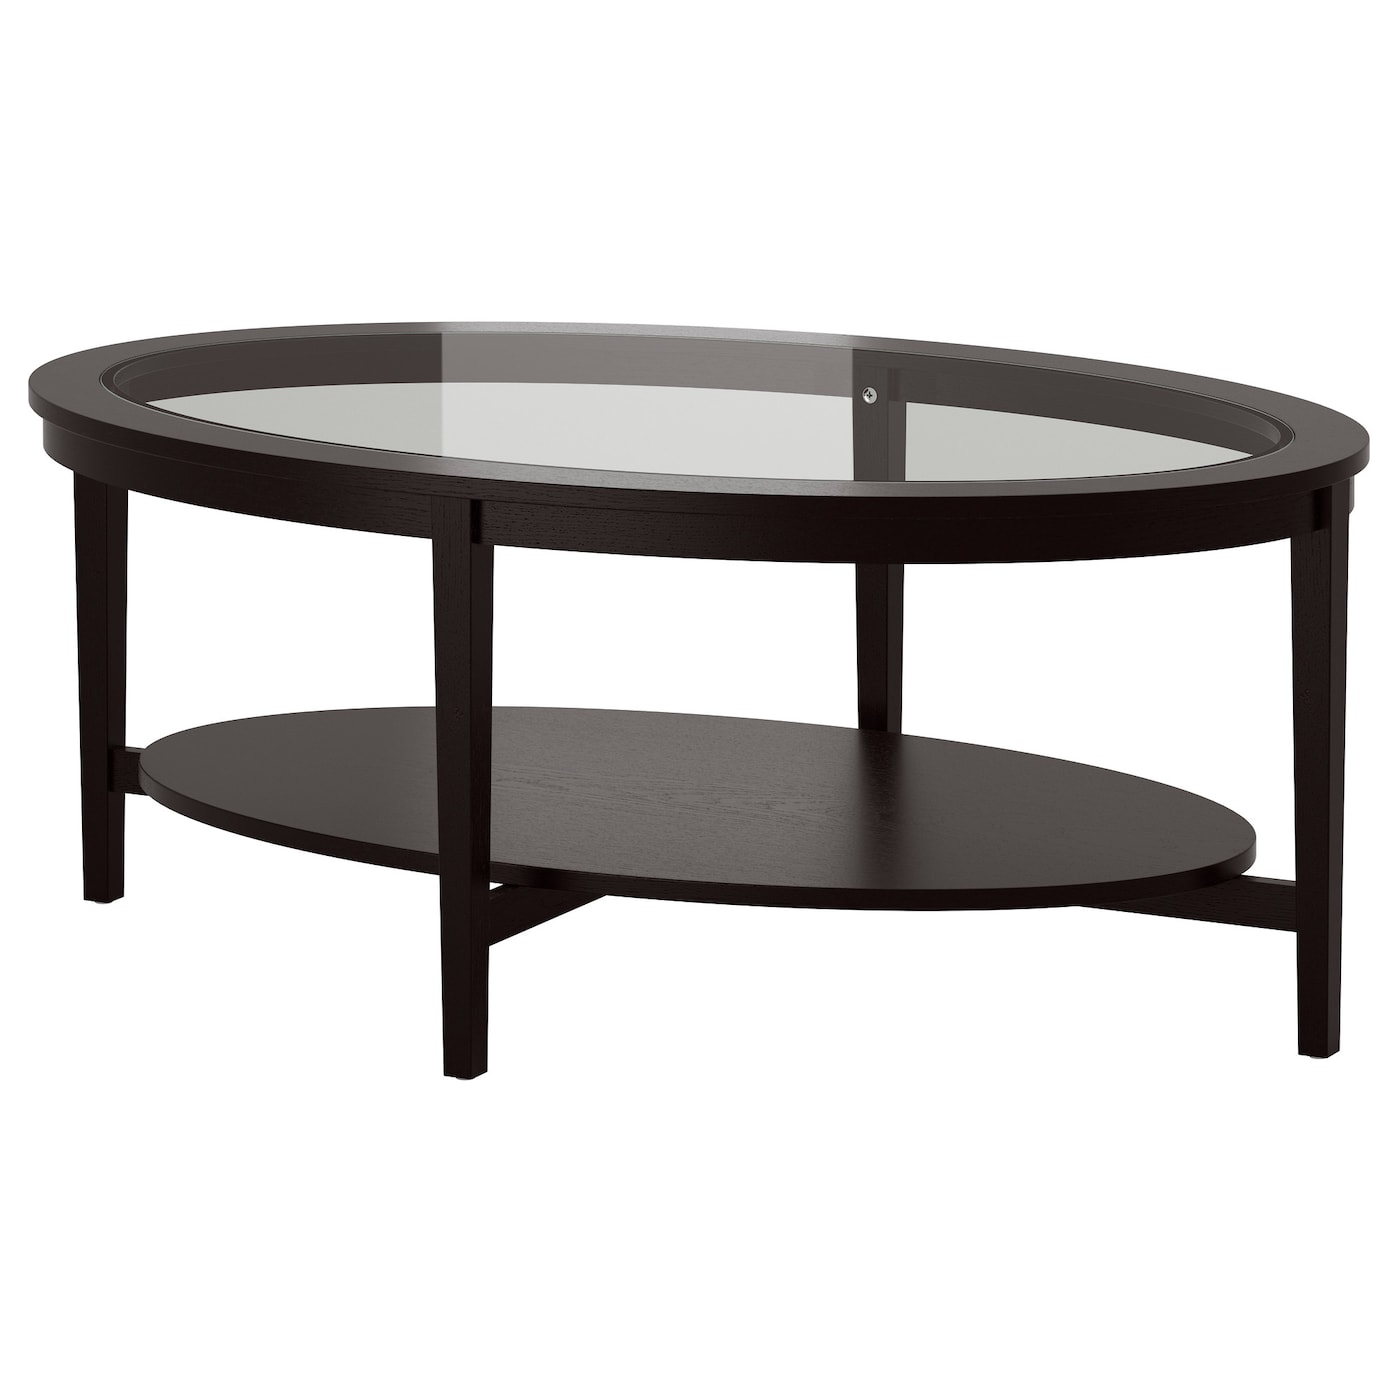 Malmsta Coffee Table Black Brown 130x80 Cm Ikea: black coffee table